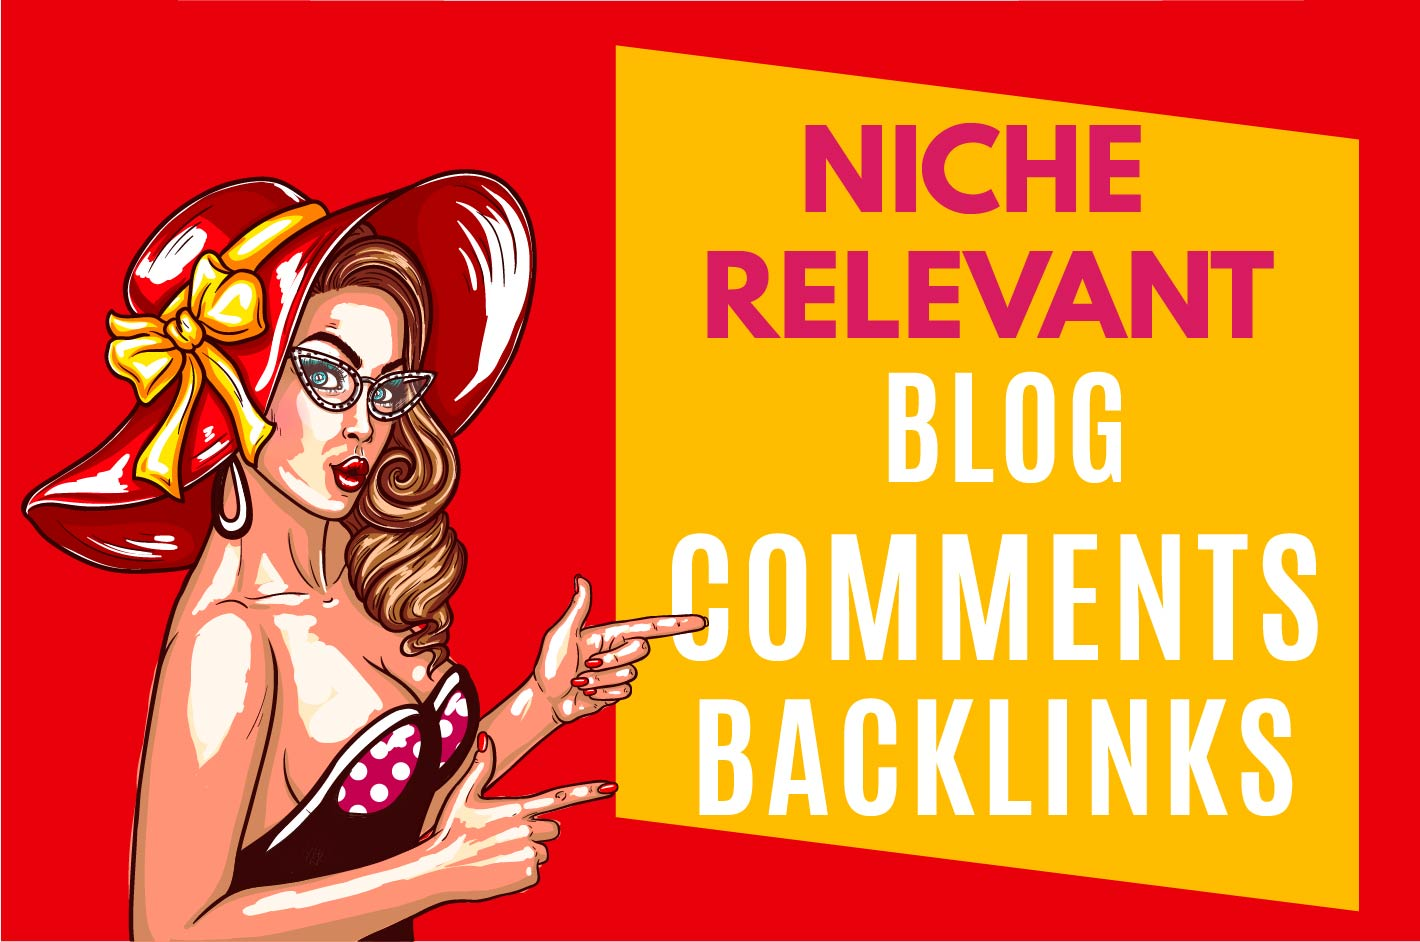 I will provide 27 niche relevant blog comments